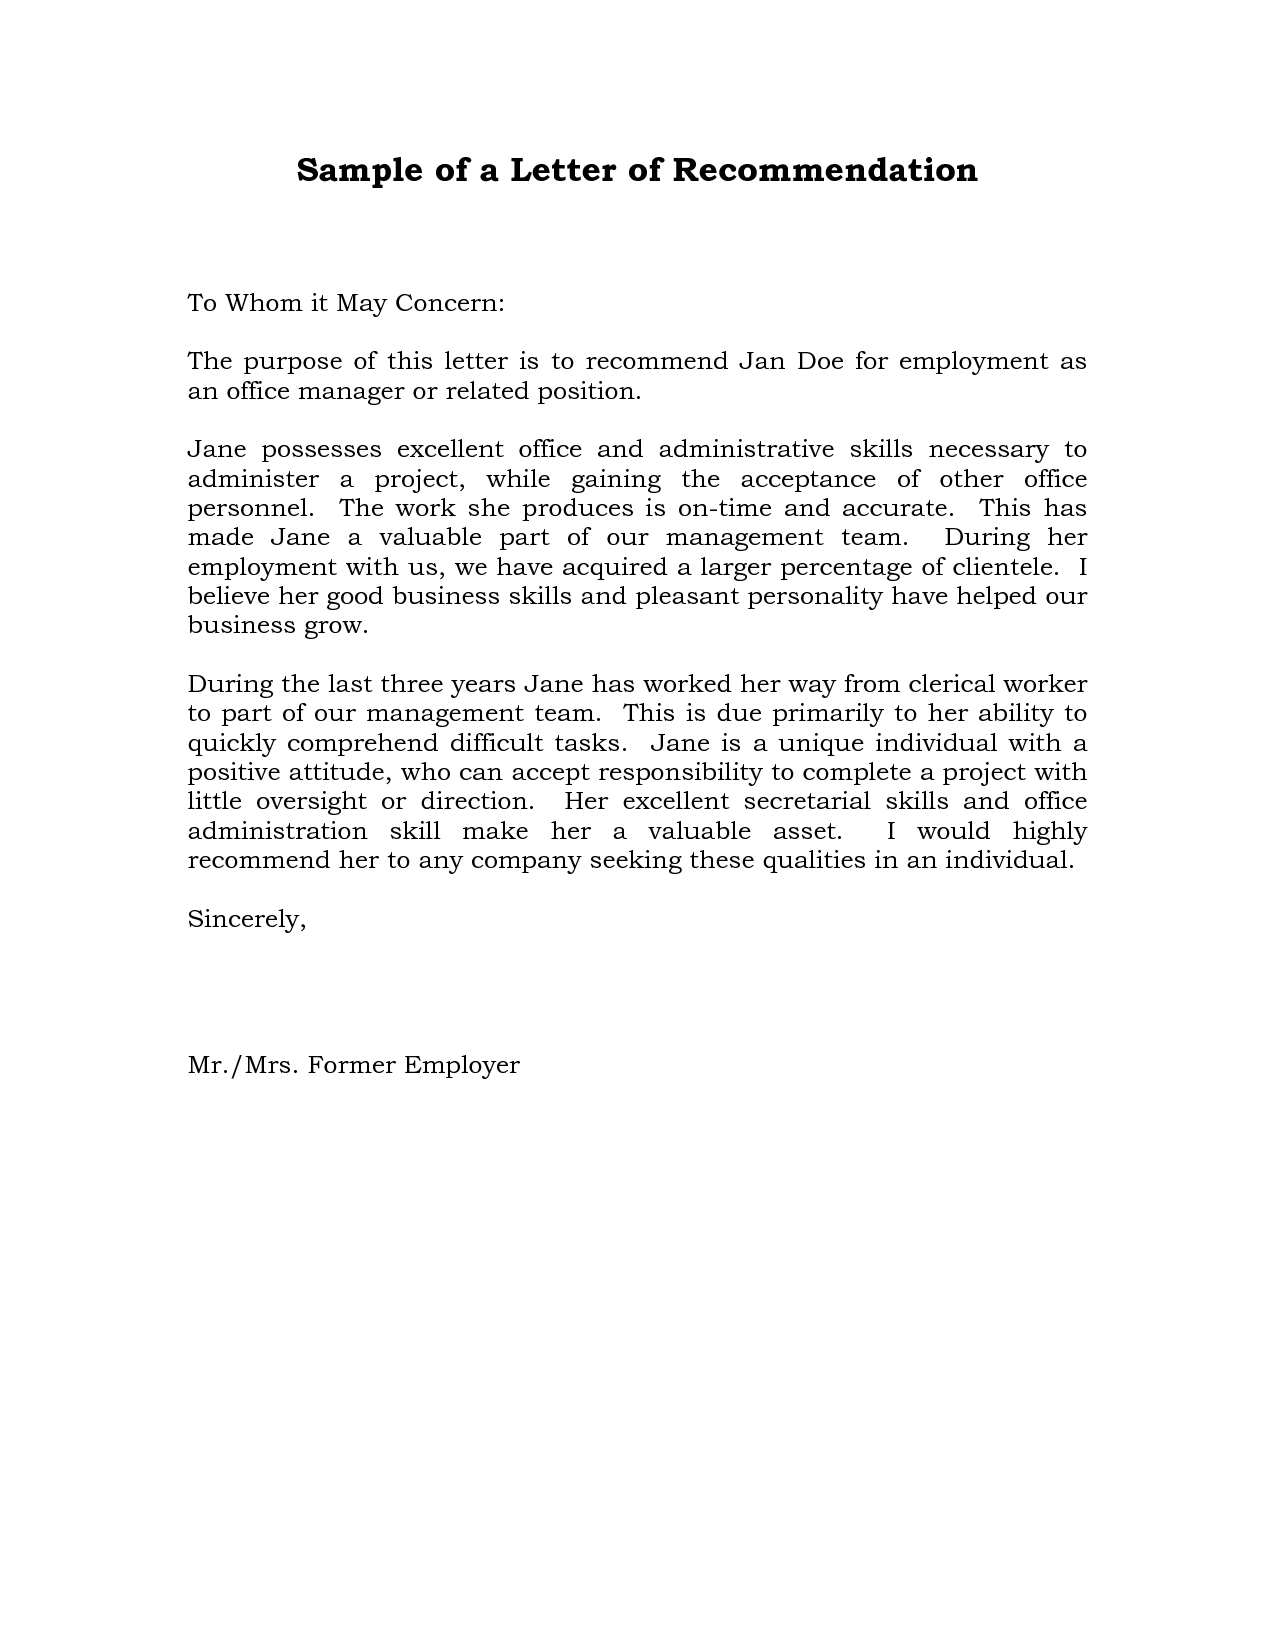 Reference Letter of Recommendation Sample – Sample Job Reference Letter